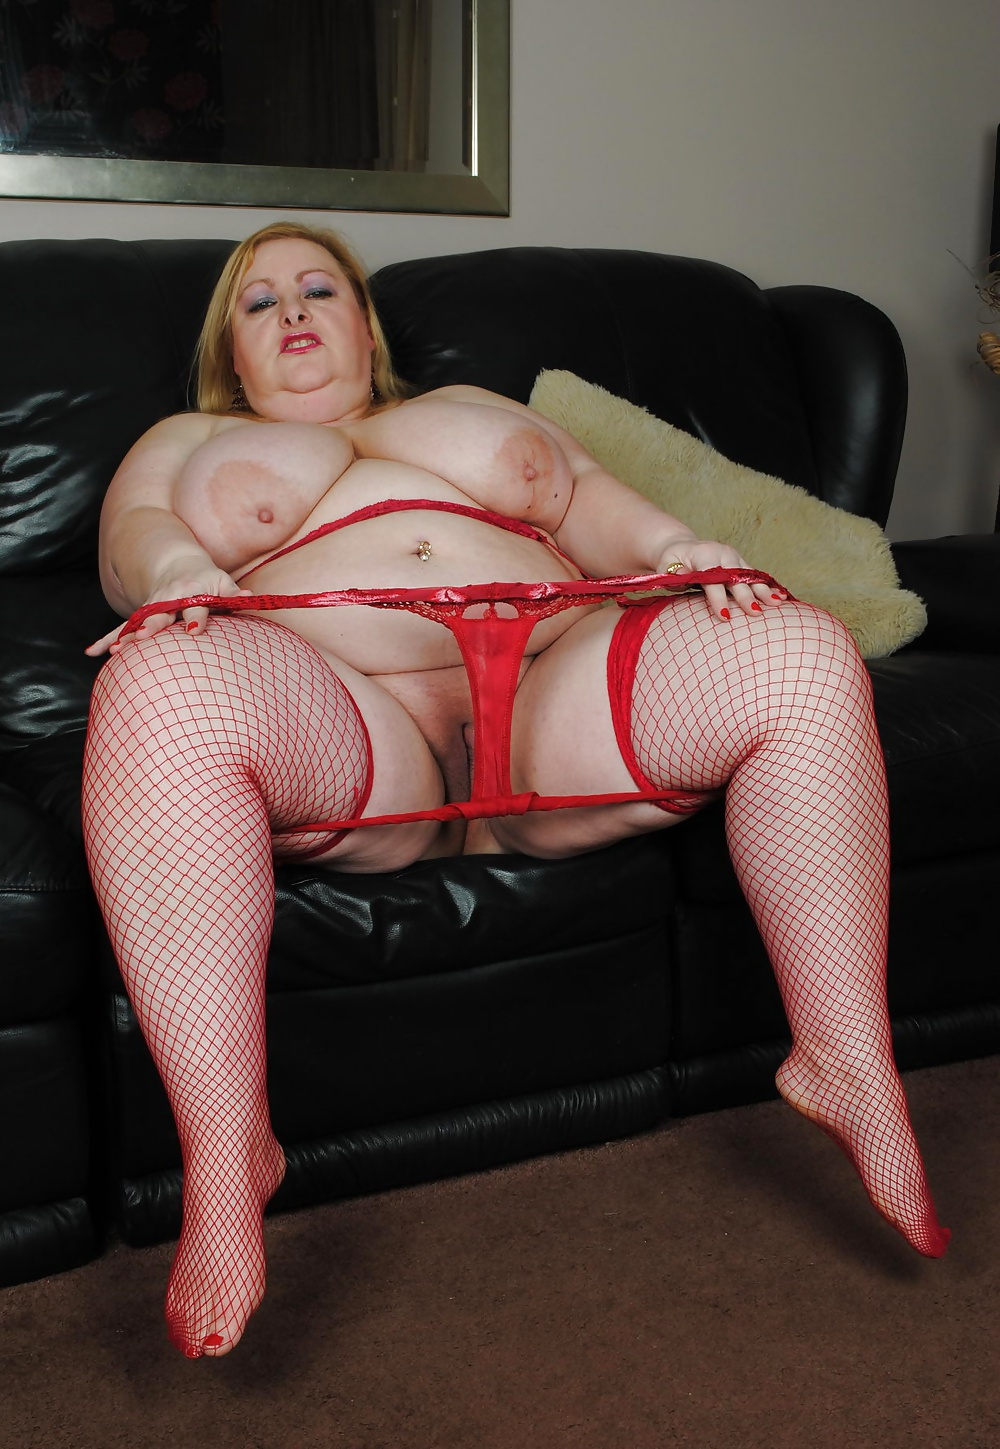 bbw-mature-movie-galleries-high-res-nude-amateur